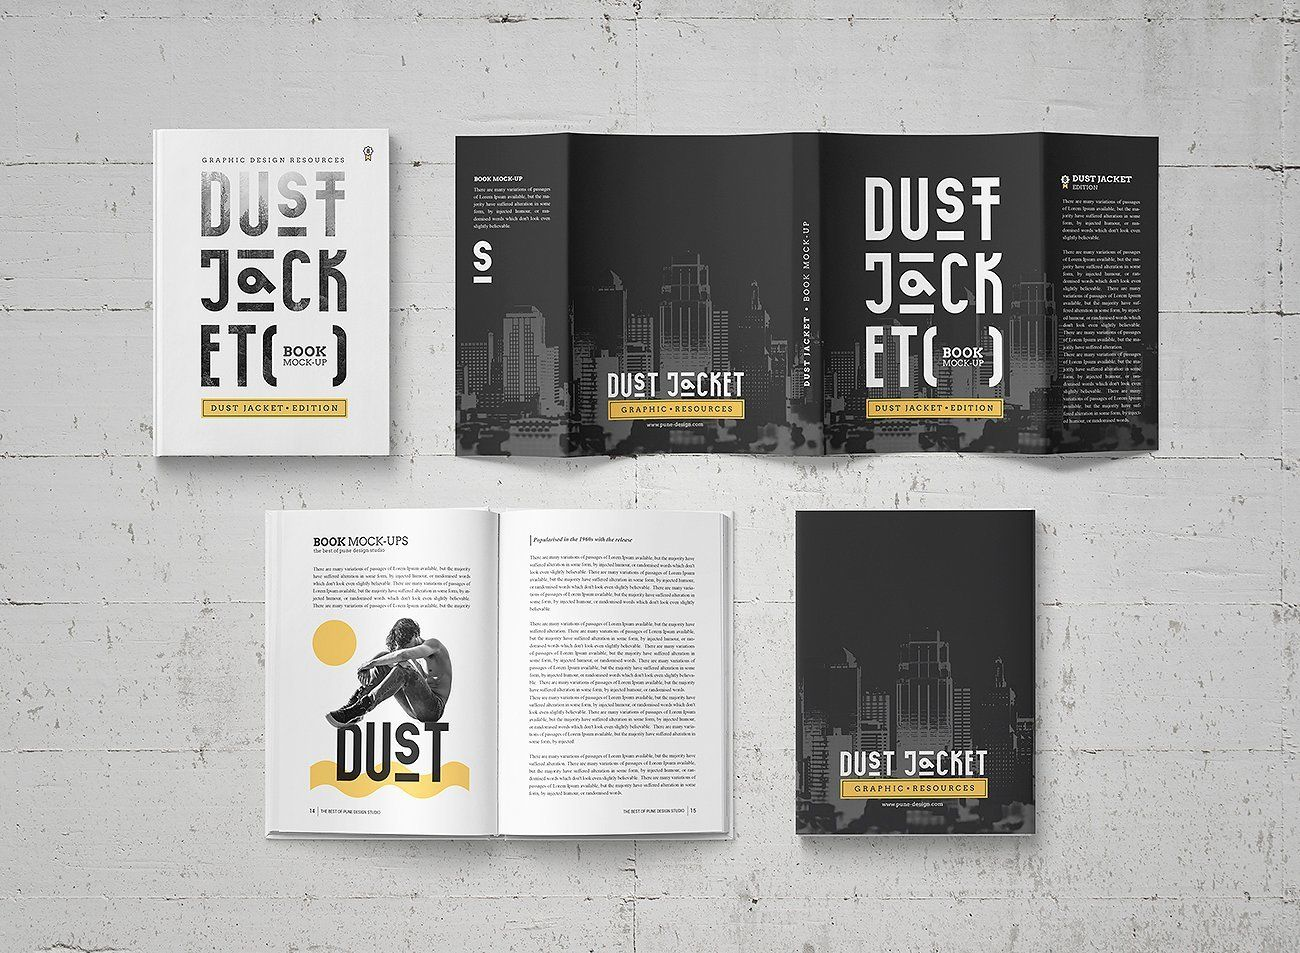 book mock up dust jacket edition by punedesign graphics mockup